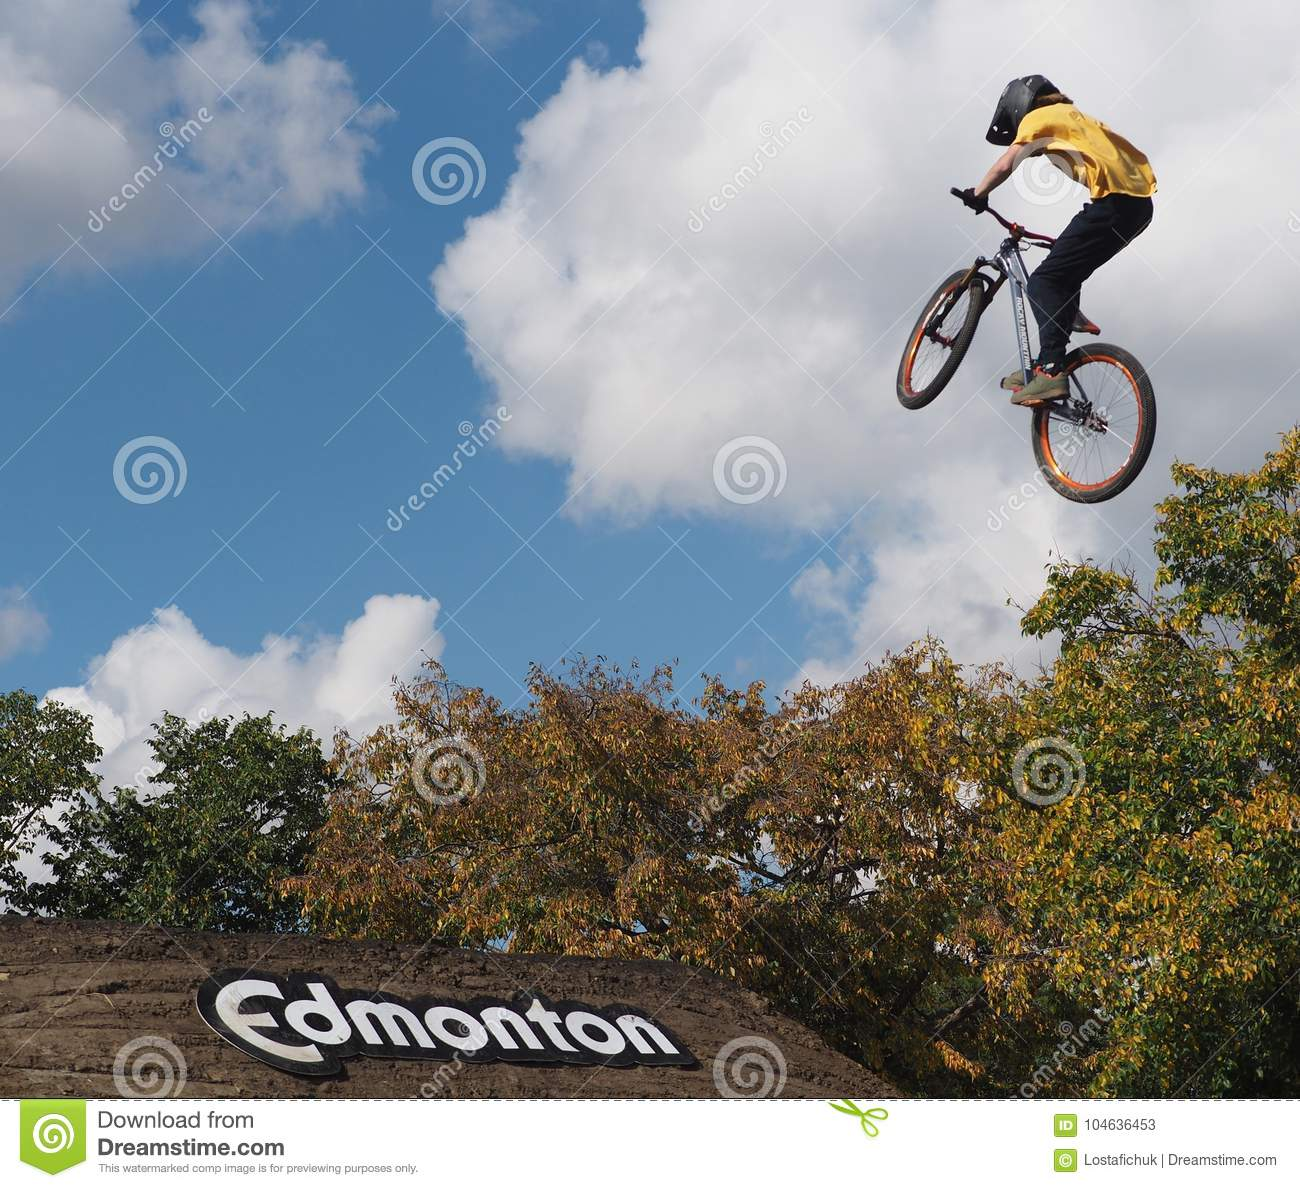 Download FISE-Fietser In Edmonton Alberta Redactionele Stock Foto - Afbeelding bestaande uit competition, trucs: 104636453